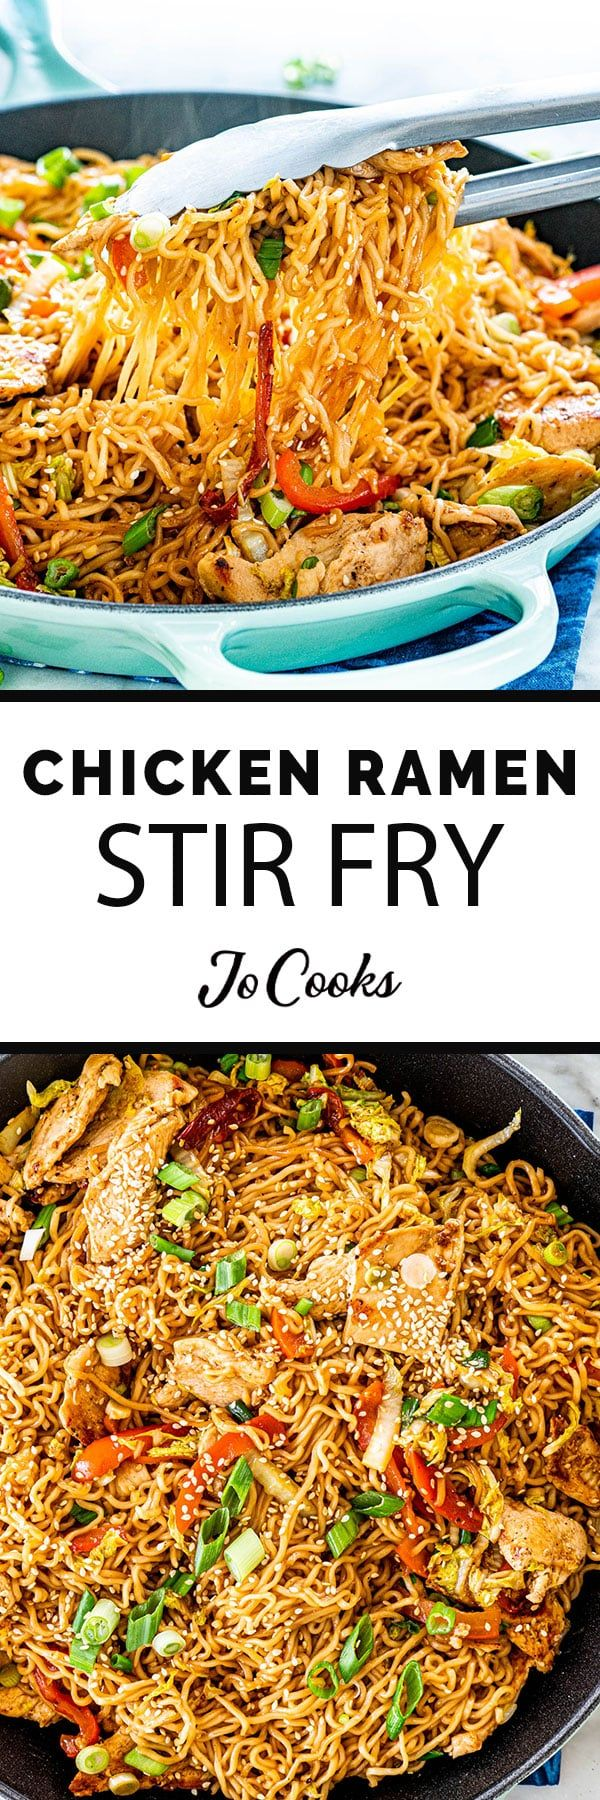 Chicken Ramen Stir Fry is a simple but tasty dish …